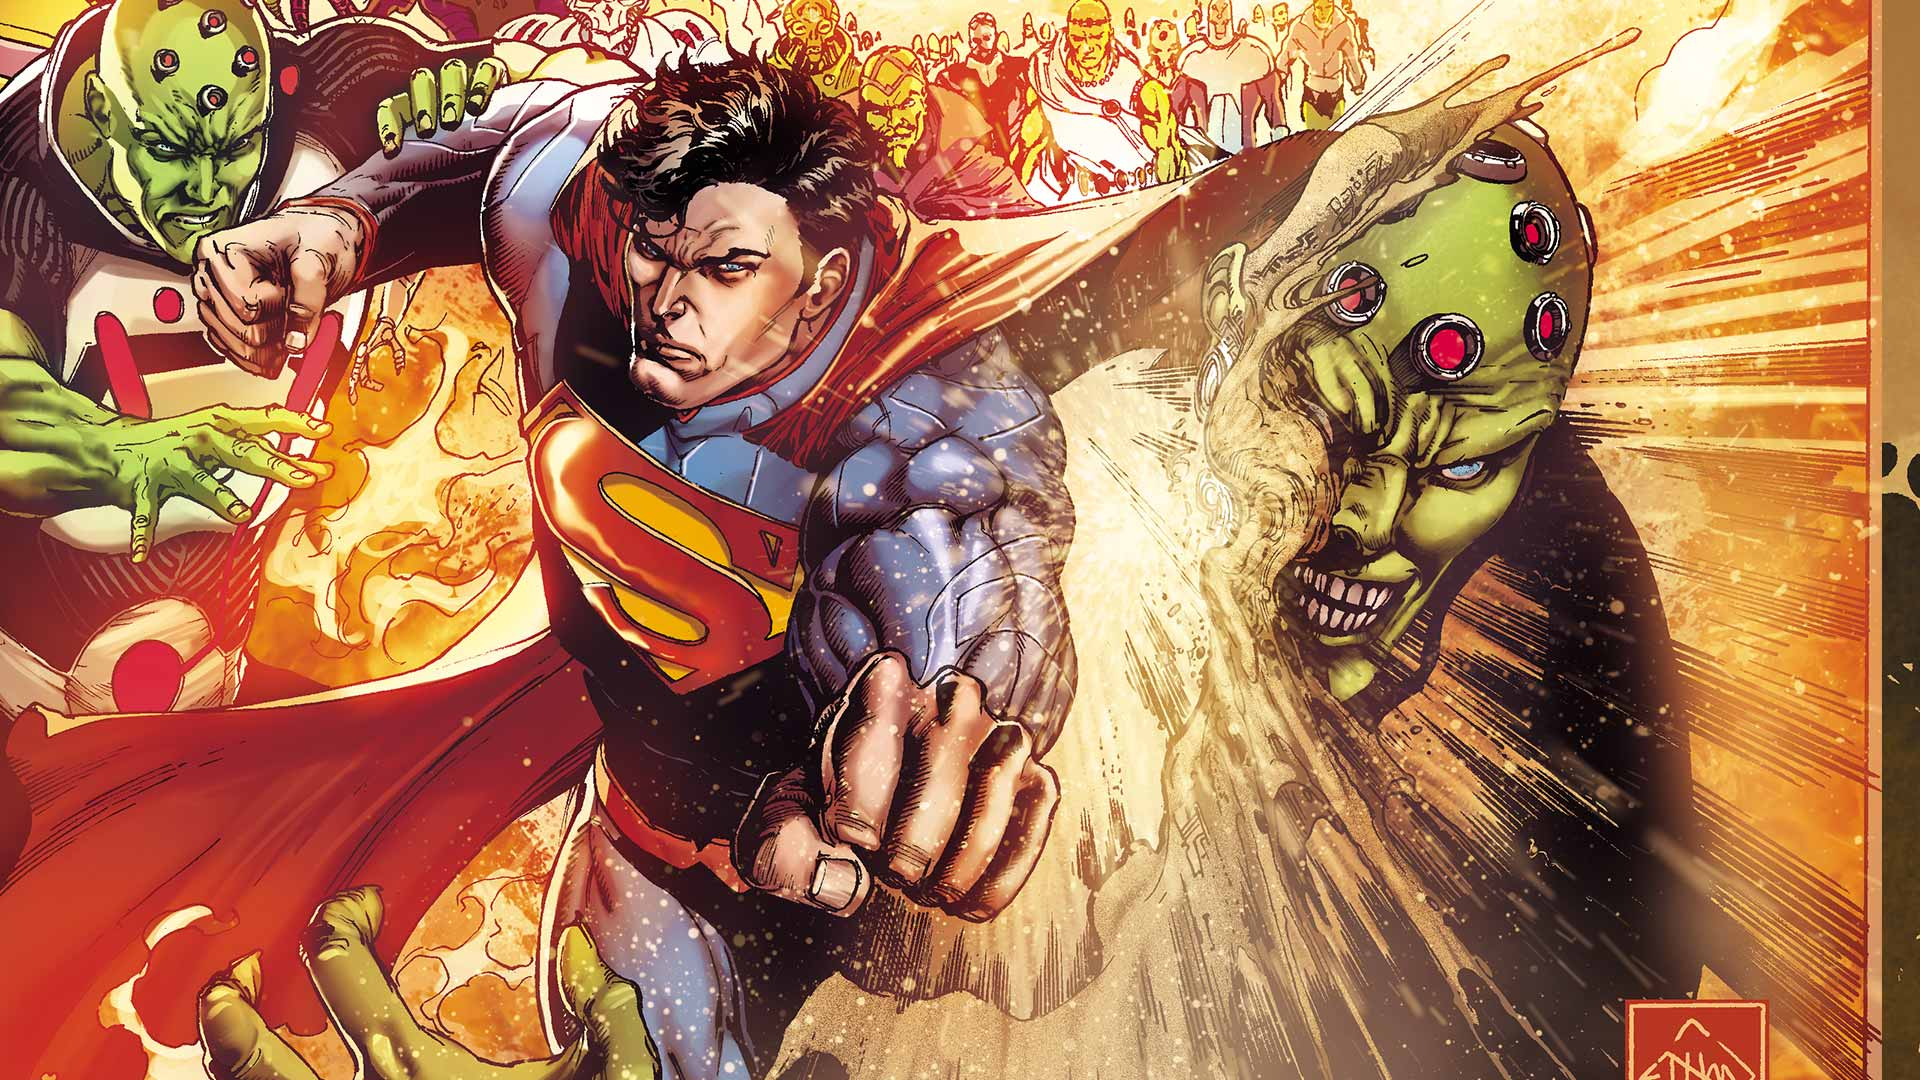 Superman in action with Brainiac